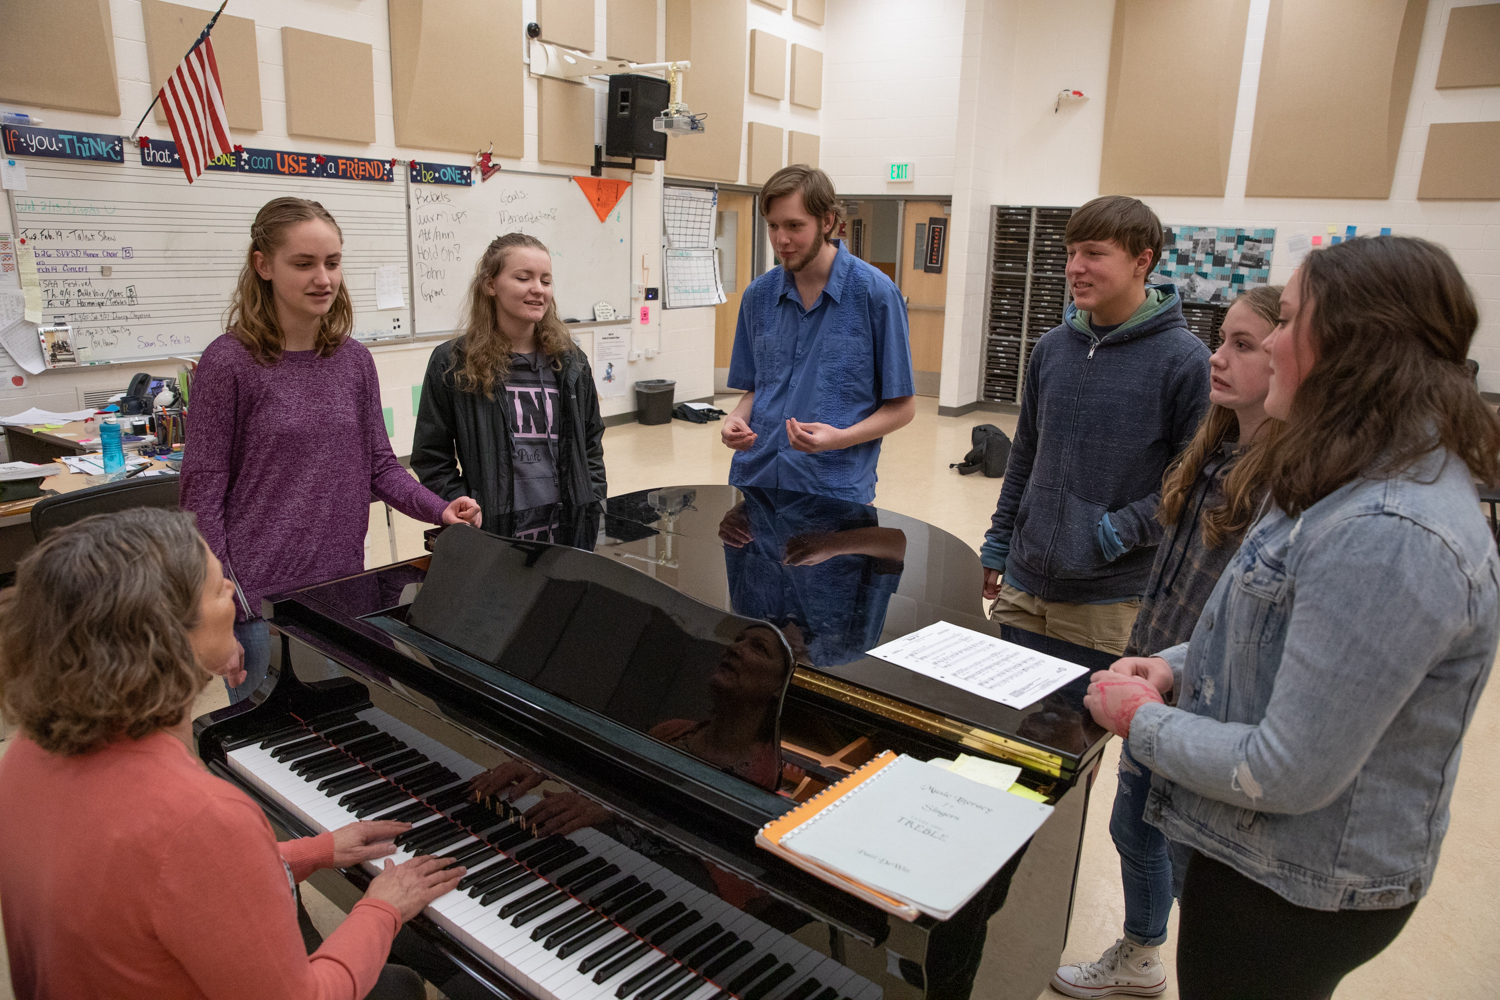 MHS choir students practice their songs to perform on Valentines day.